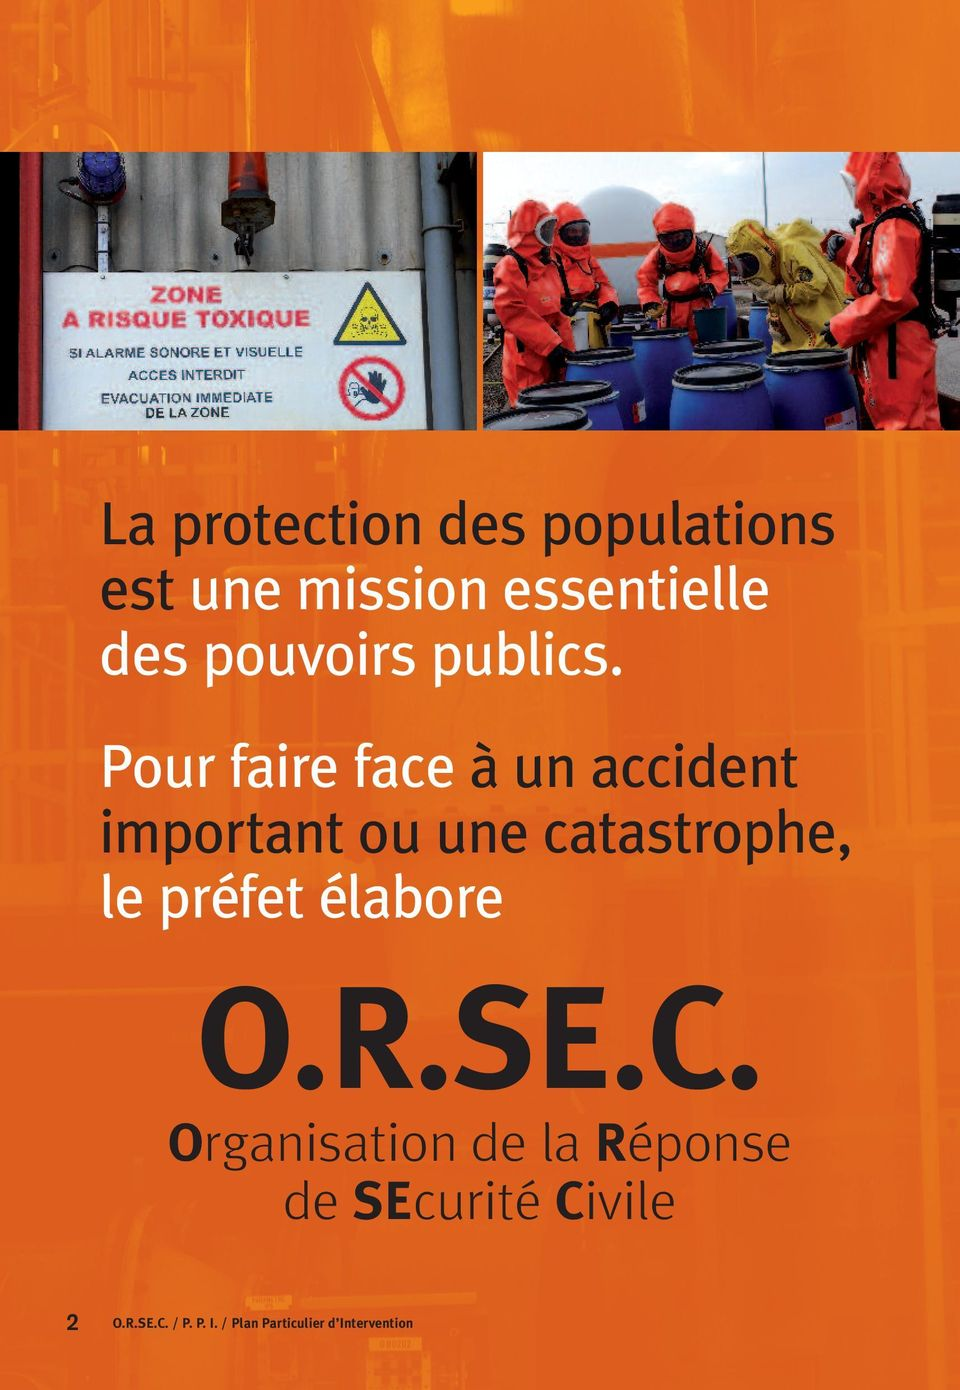 Pour faire face à un accident important ou une catastrophe, le